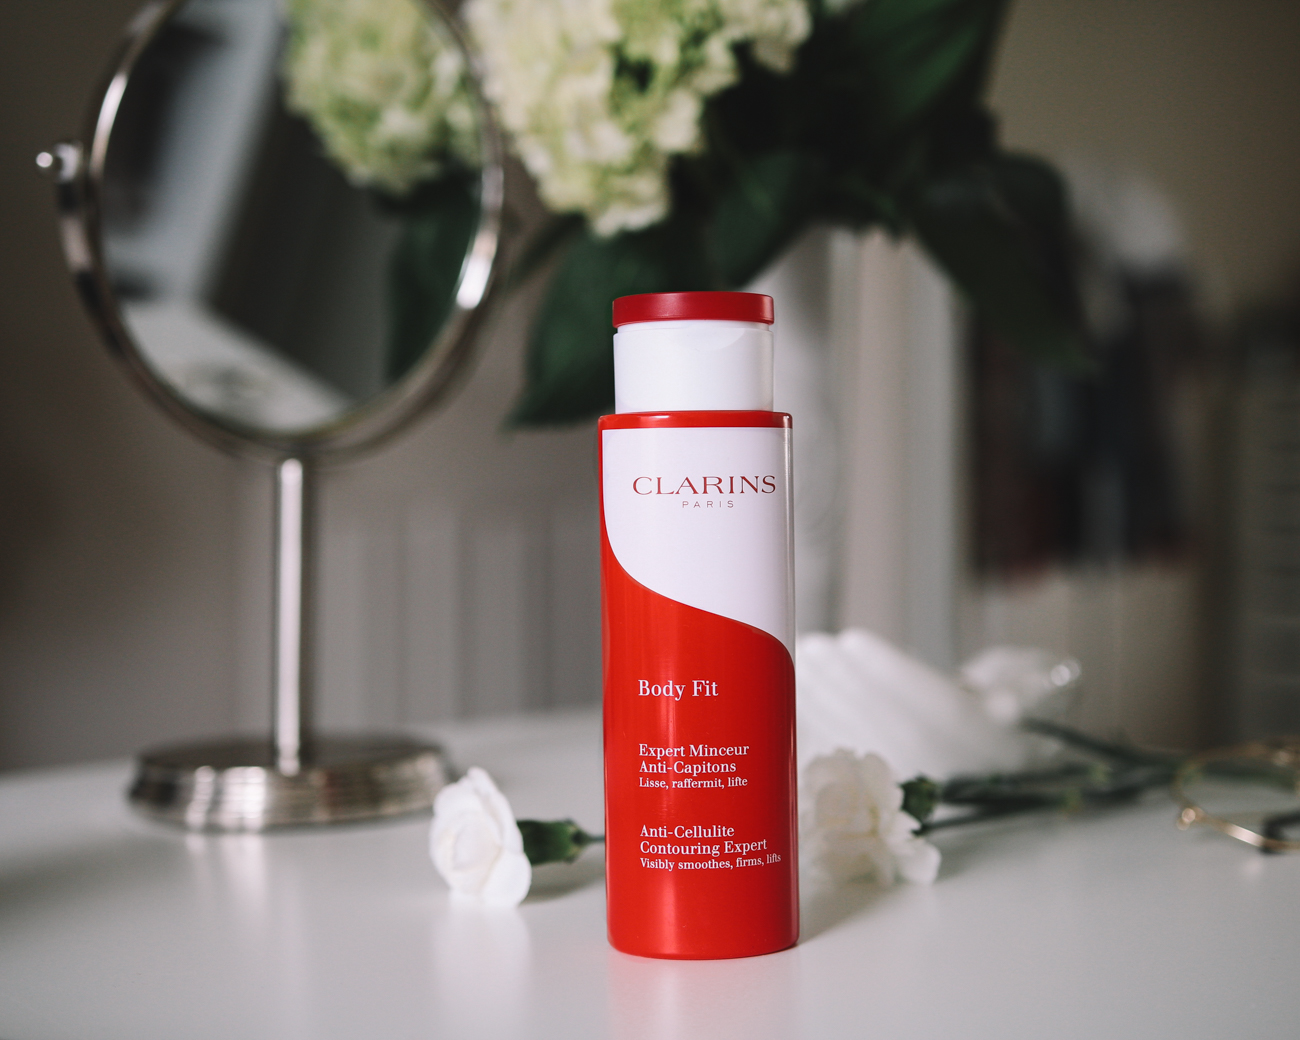 Clarins - Body Fit Anti-Cellulite Contouring Expert -200ml/6.9oz Image Skin care Ageless Total Retinol A Creme 1 oz